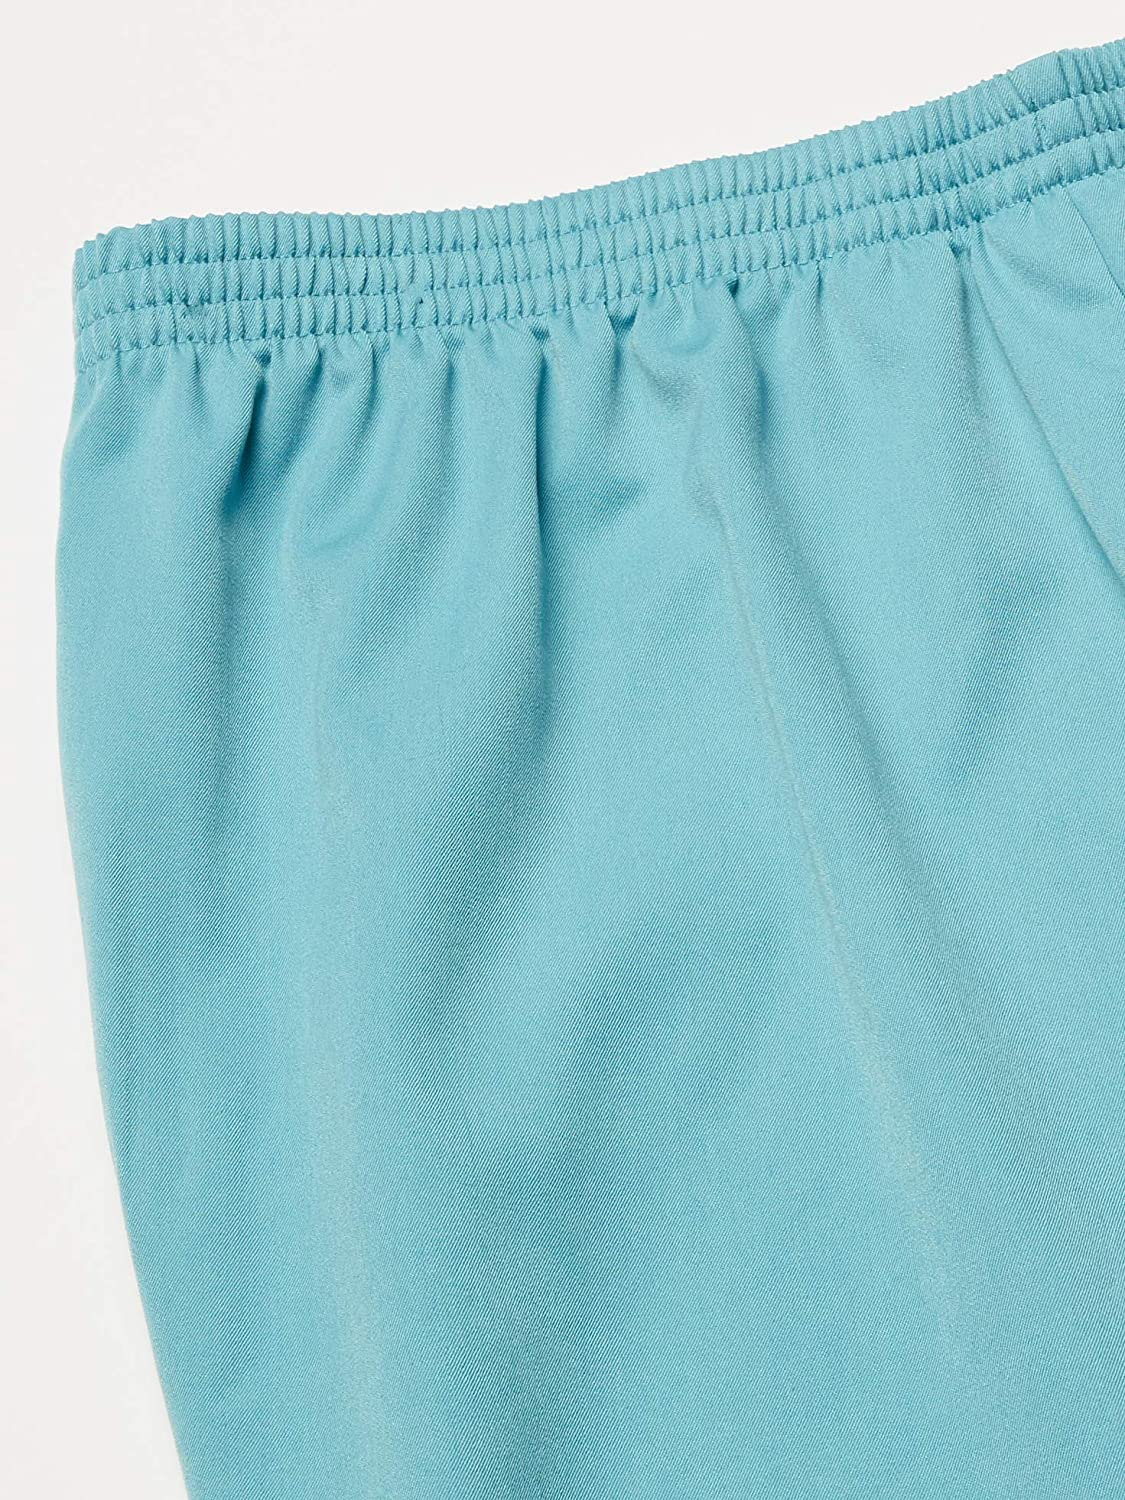 Alfred Dunner Womens Petite Twill Proportioned Short Pant